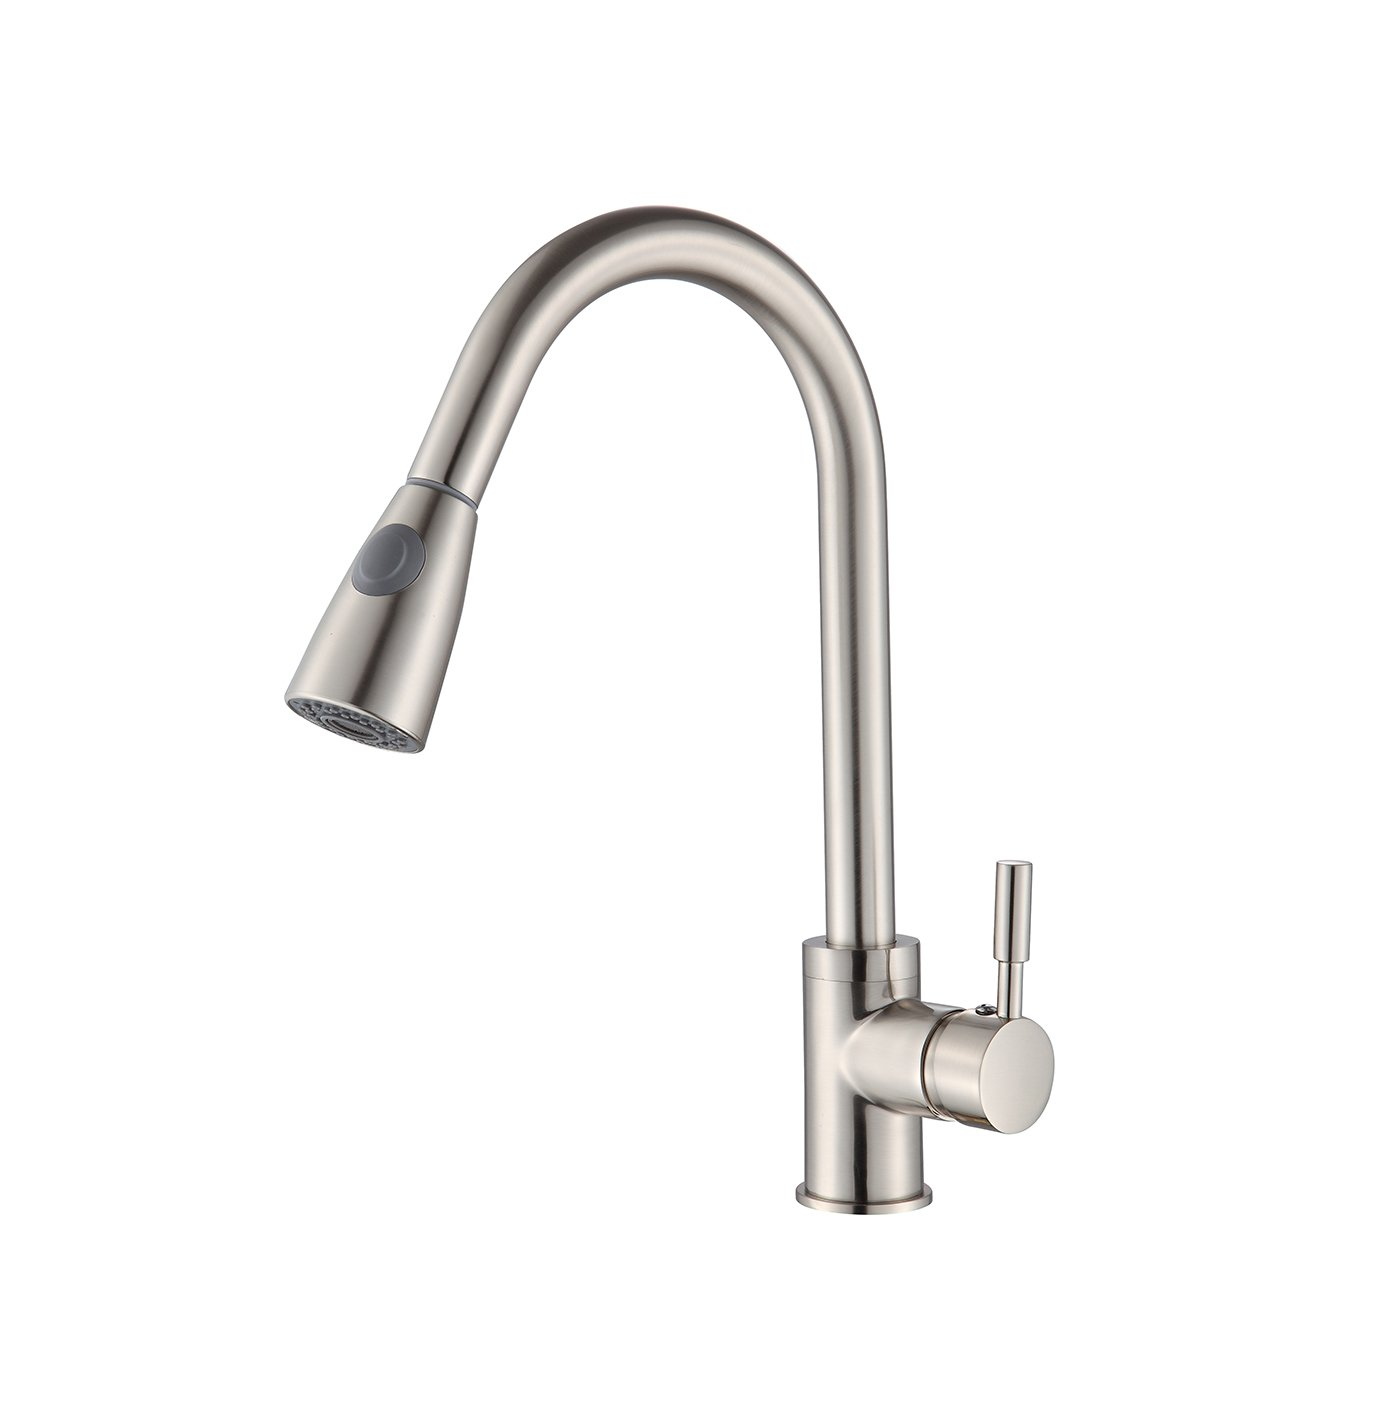 BuyHive Kitchen Faucet Brushed Nickel Pull Out Sprayer Commercial Home Sink Mixer Tap Single Handle